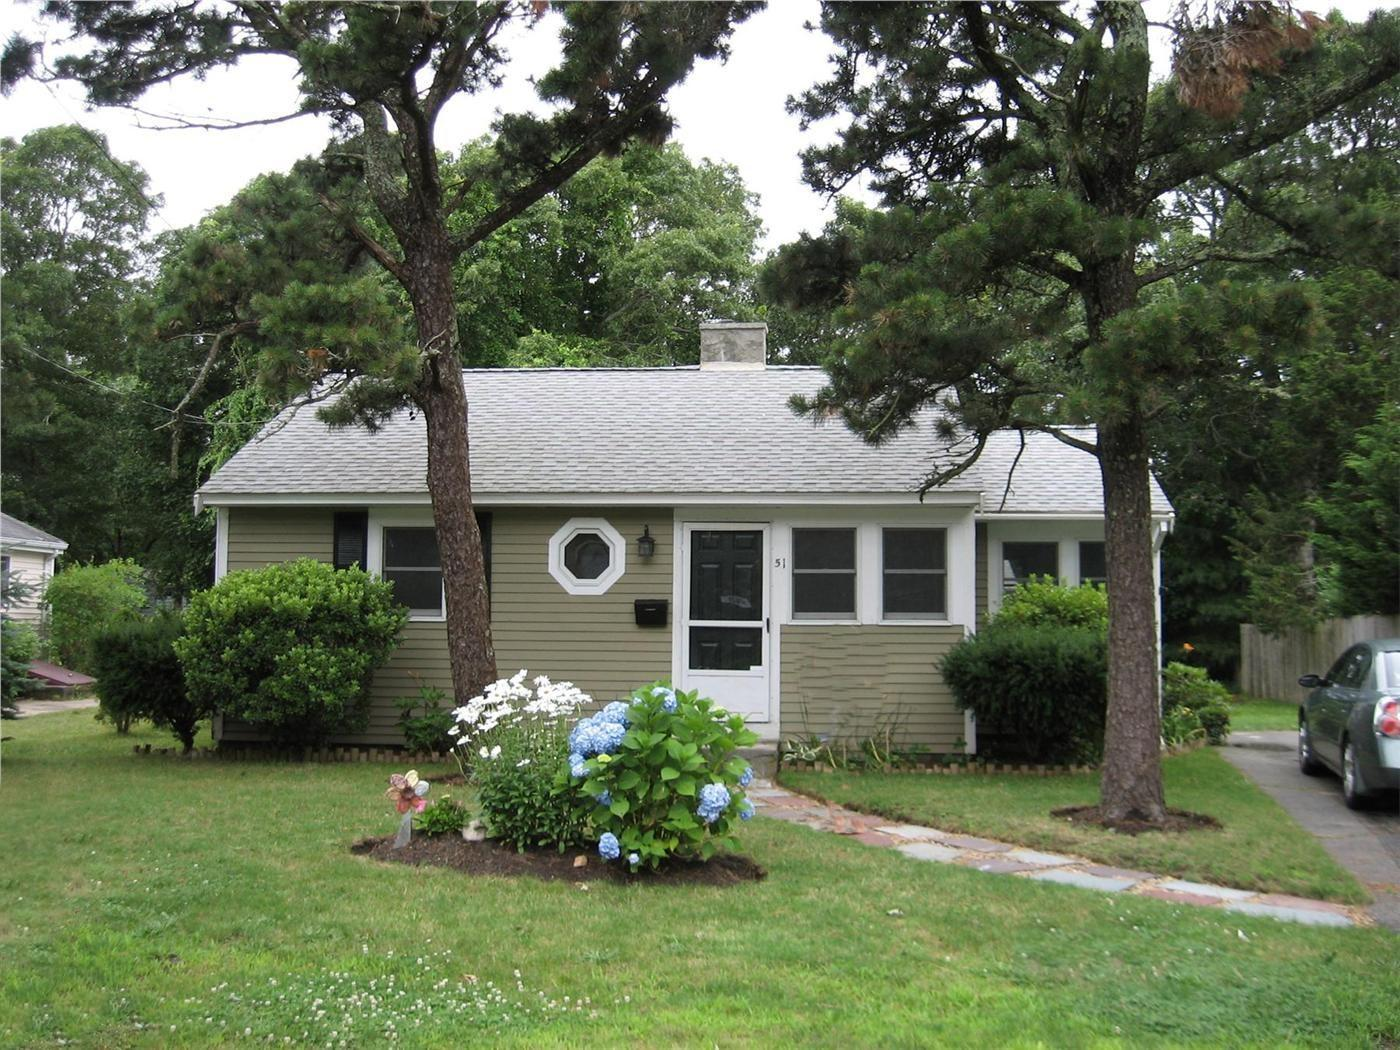 cottage photo estate ave barnstable paul properties ma robert franklin hyannis real rentals